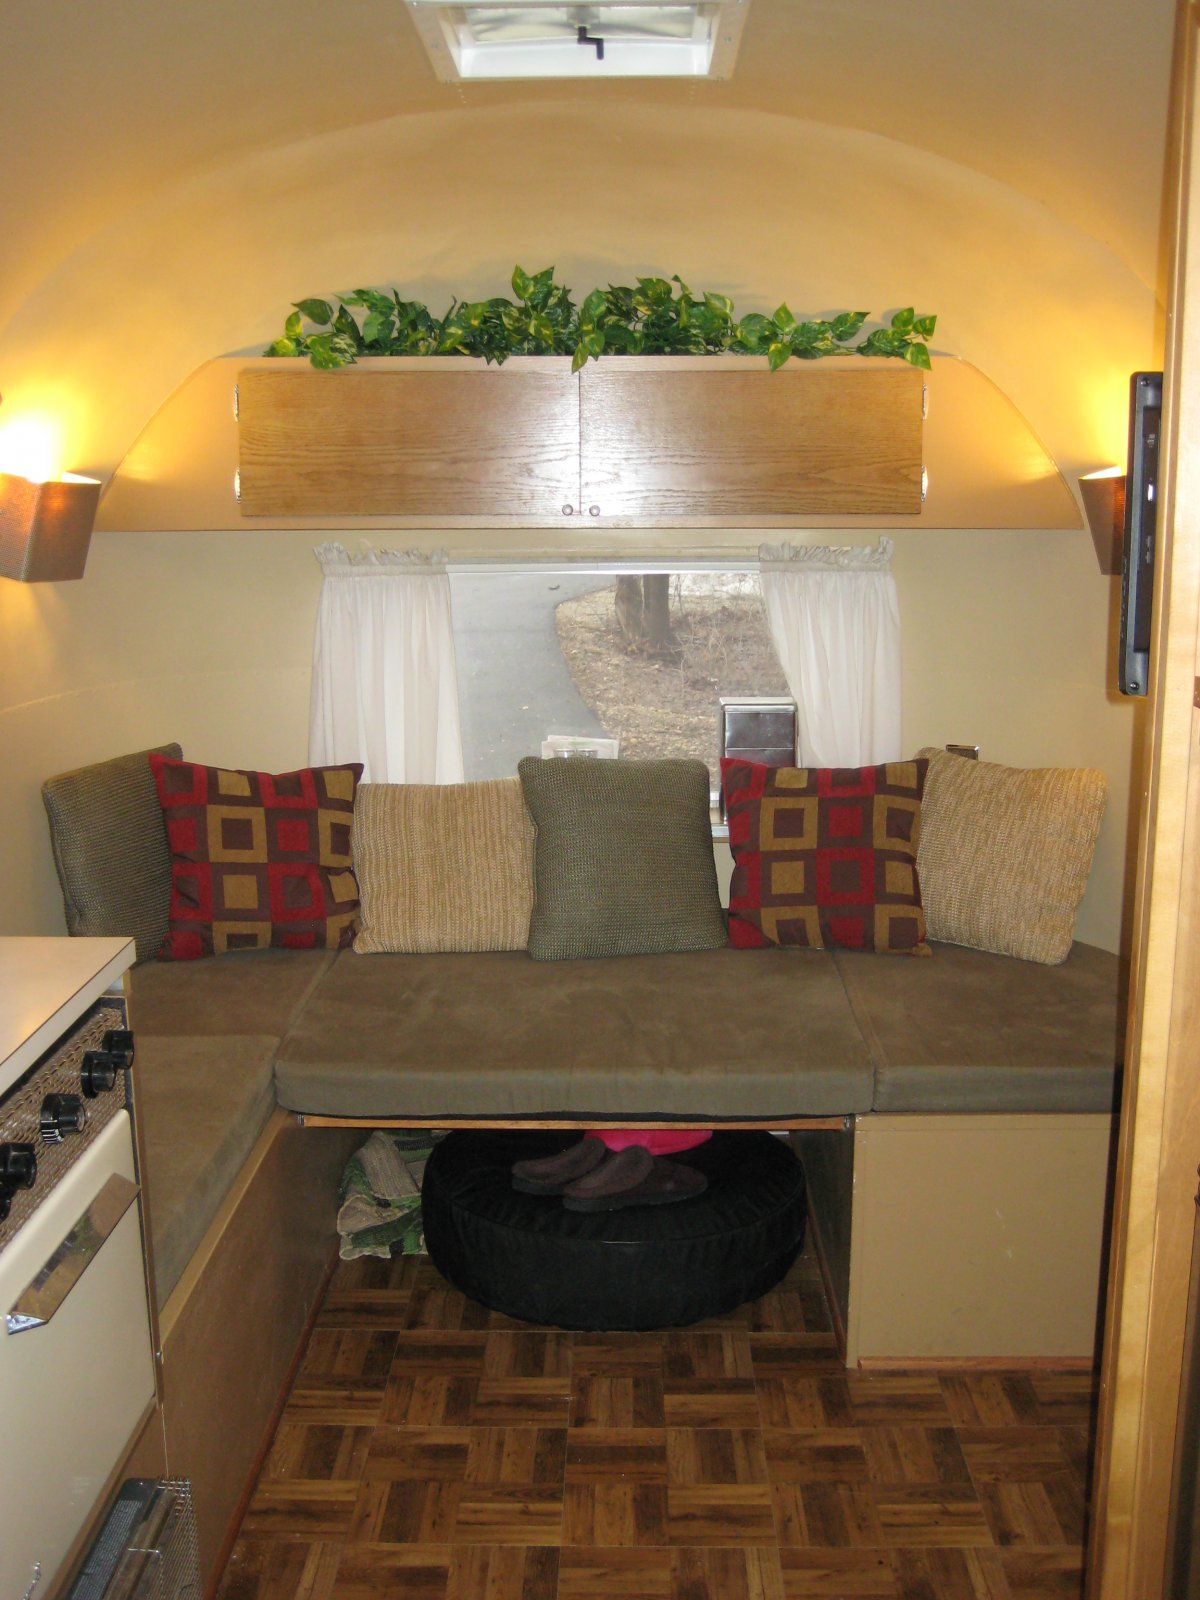 Click image for larger version  Name:Airstream 003.jpg Views:83 Size:250.6 KB ID:98301